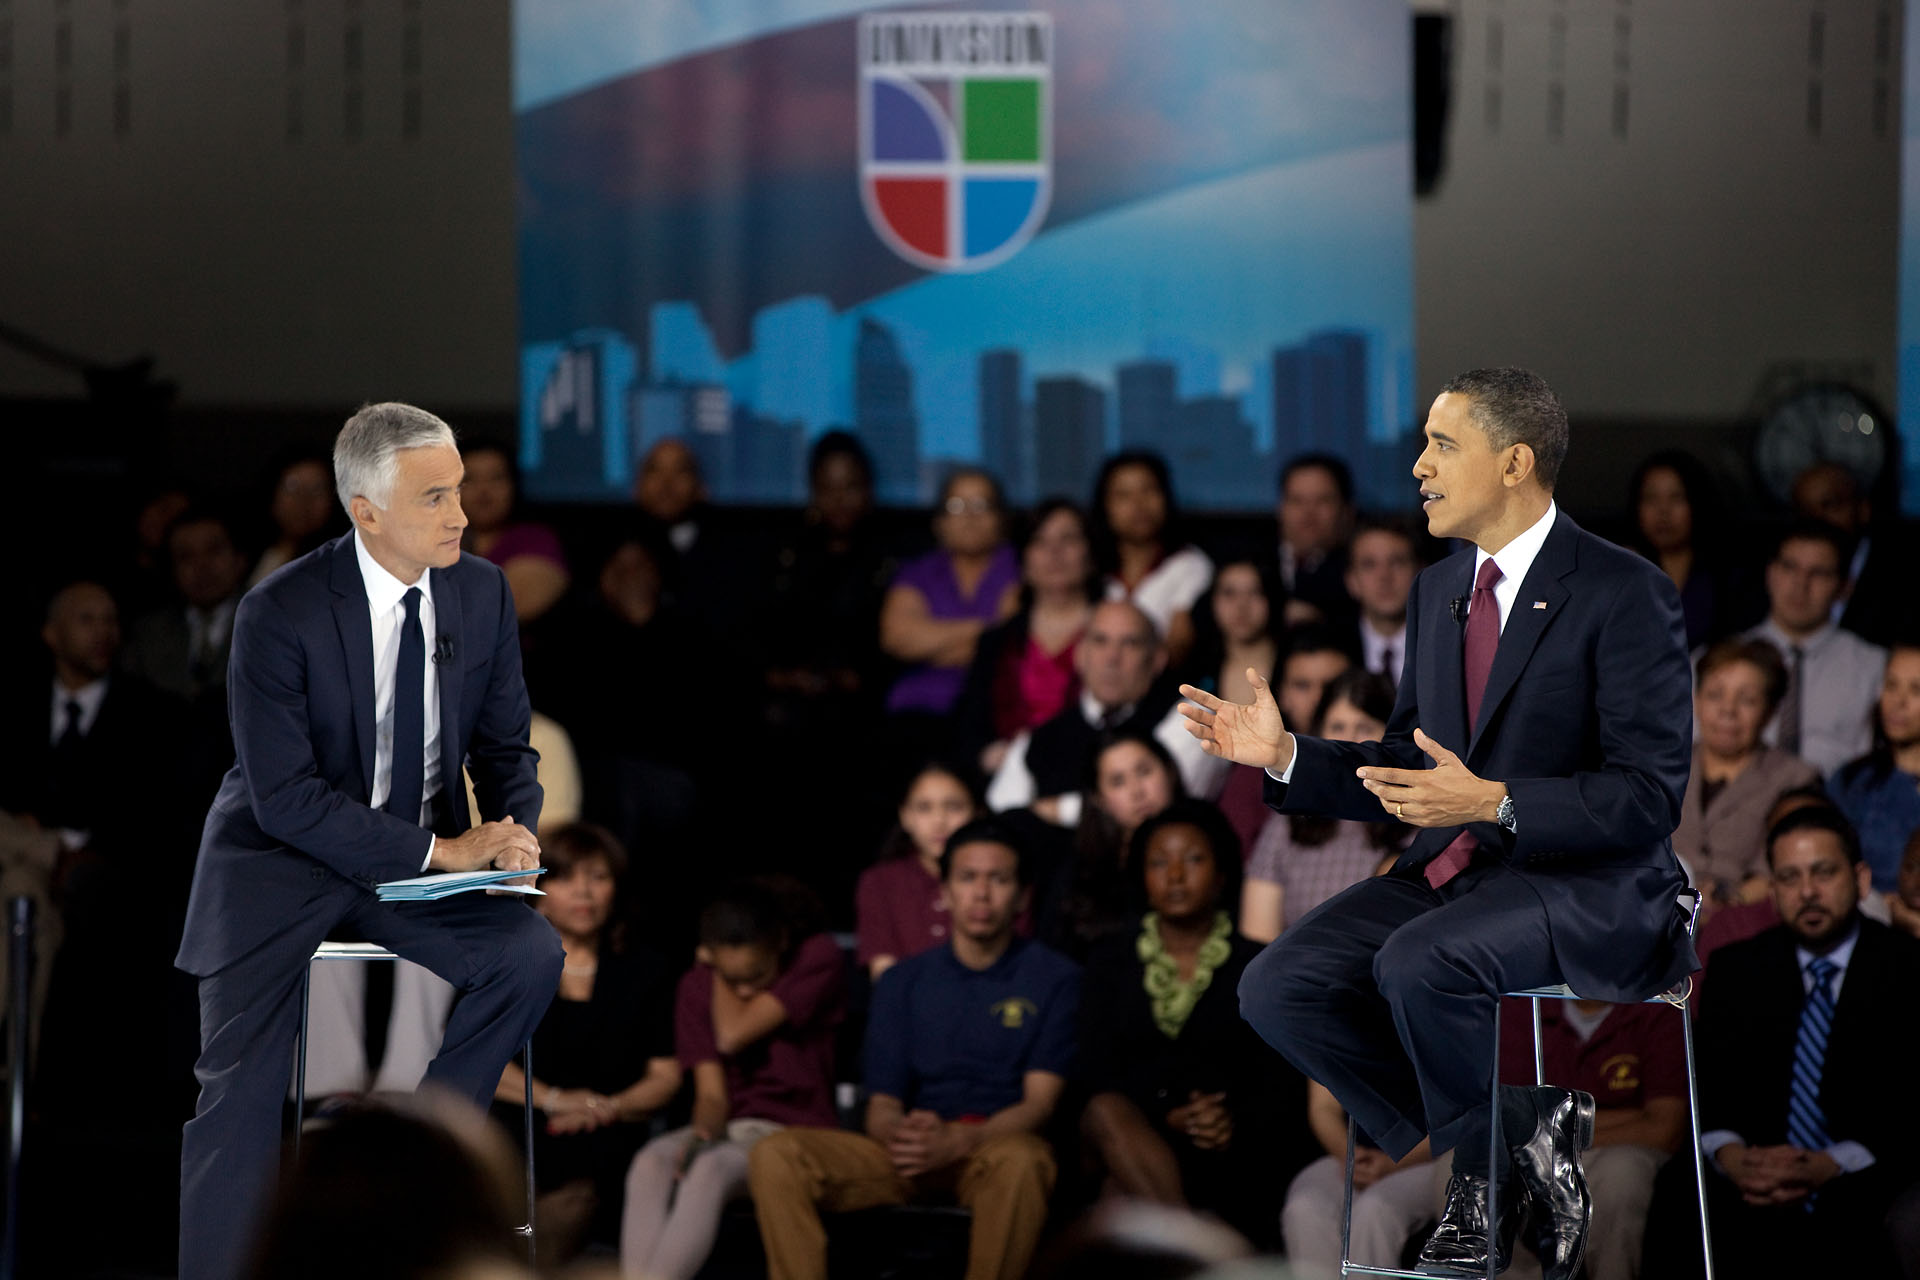 President Barack Obama with moderator Jorge Ramos at a Town Hall Meeting Hosted by Univision